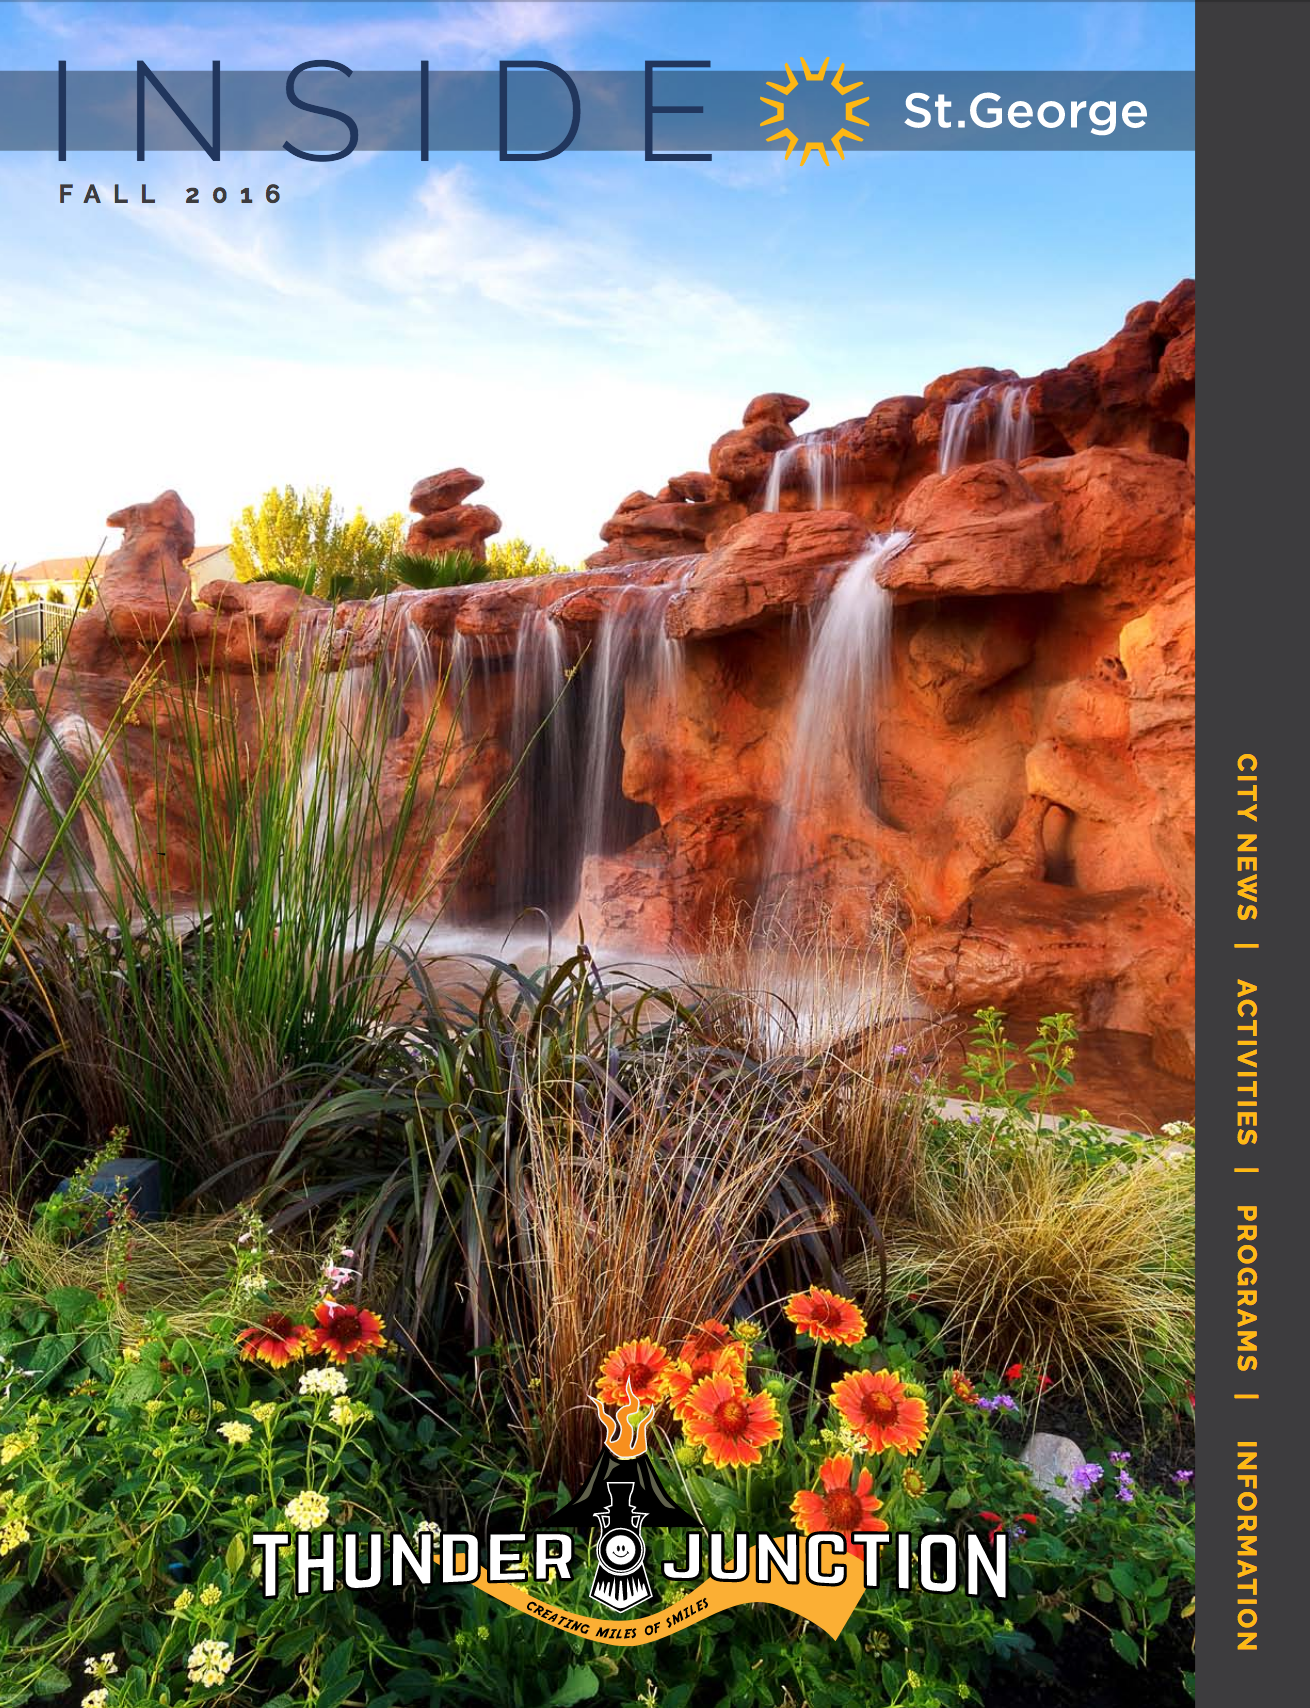 Featured on the front cover of Inside St. George - Fall 2016